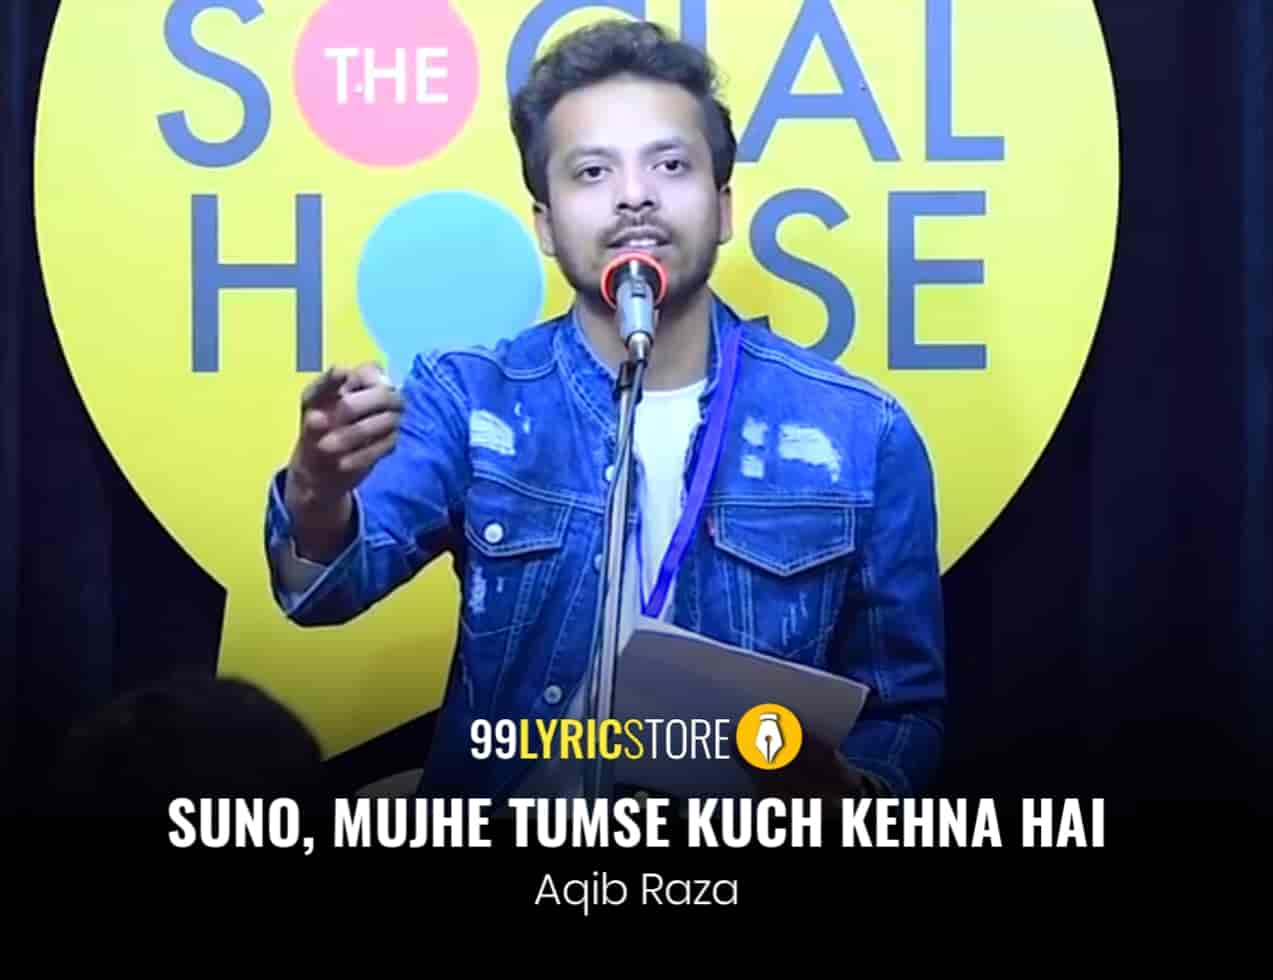 About This Poetry :- This beautiful Proposal Poem  'Suno Mujhe Tumse Kuch Kehna Hai' for The Social House is performed by Aqib Raza and also written by him which is very beautiful a piece.